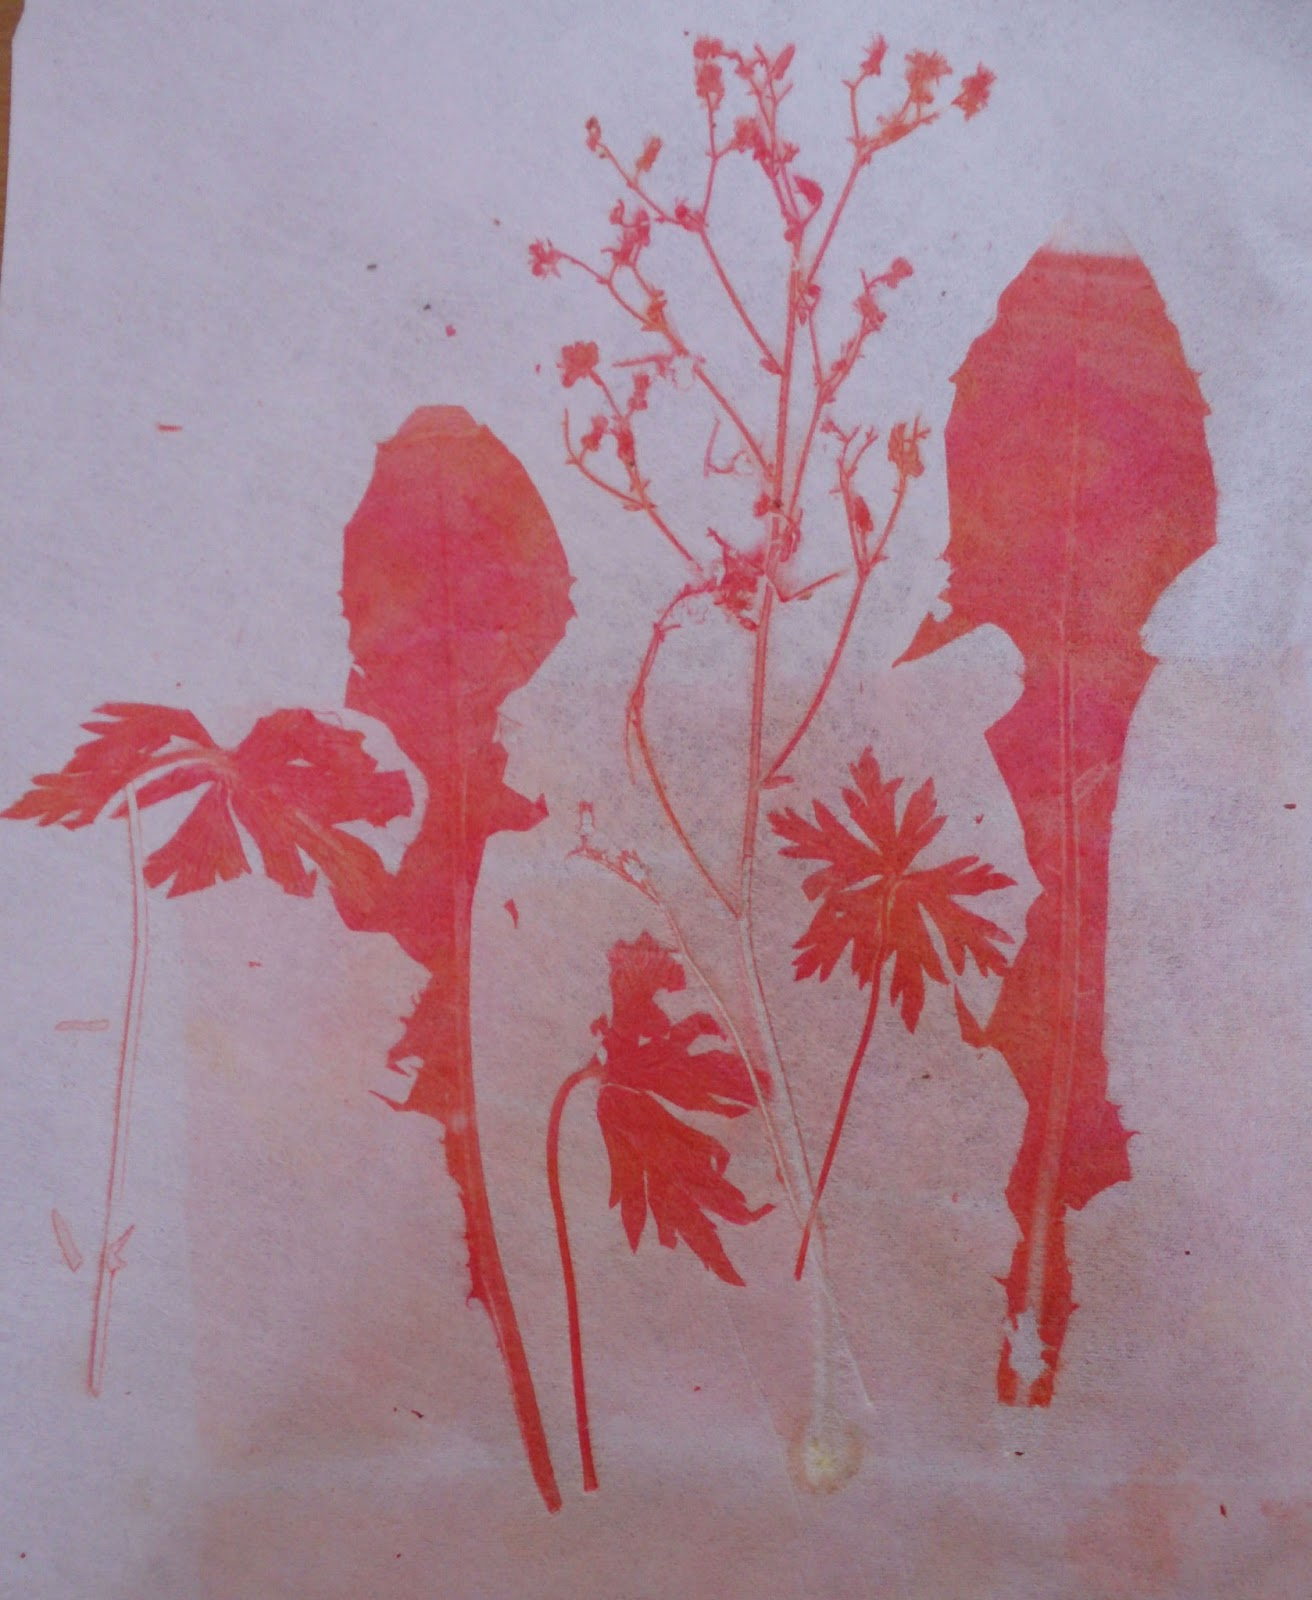 ... then turned over (they are covered in dye) and printed onto fabric